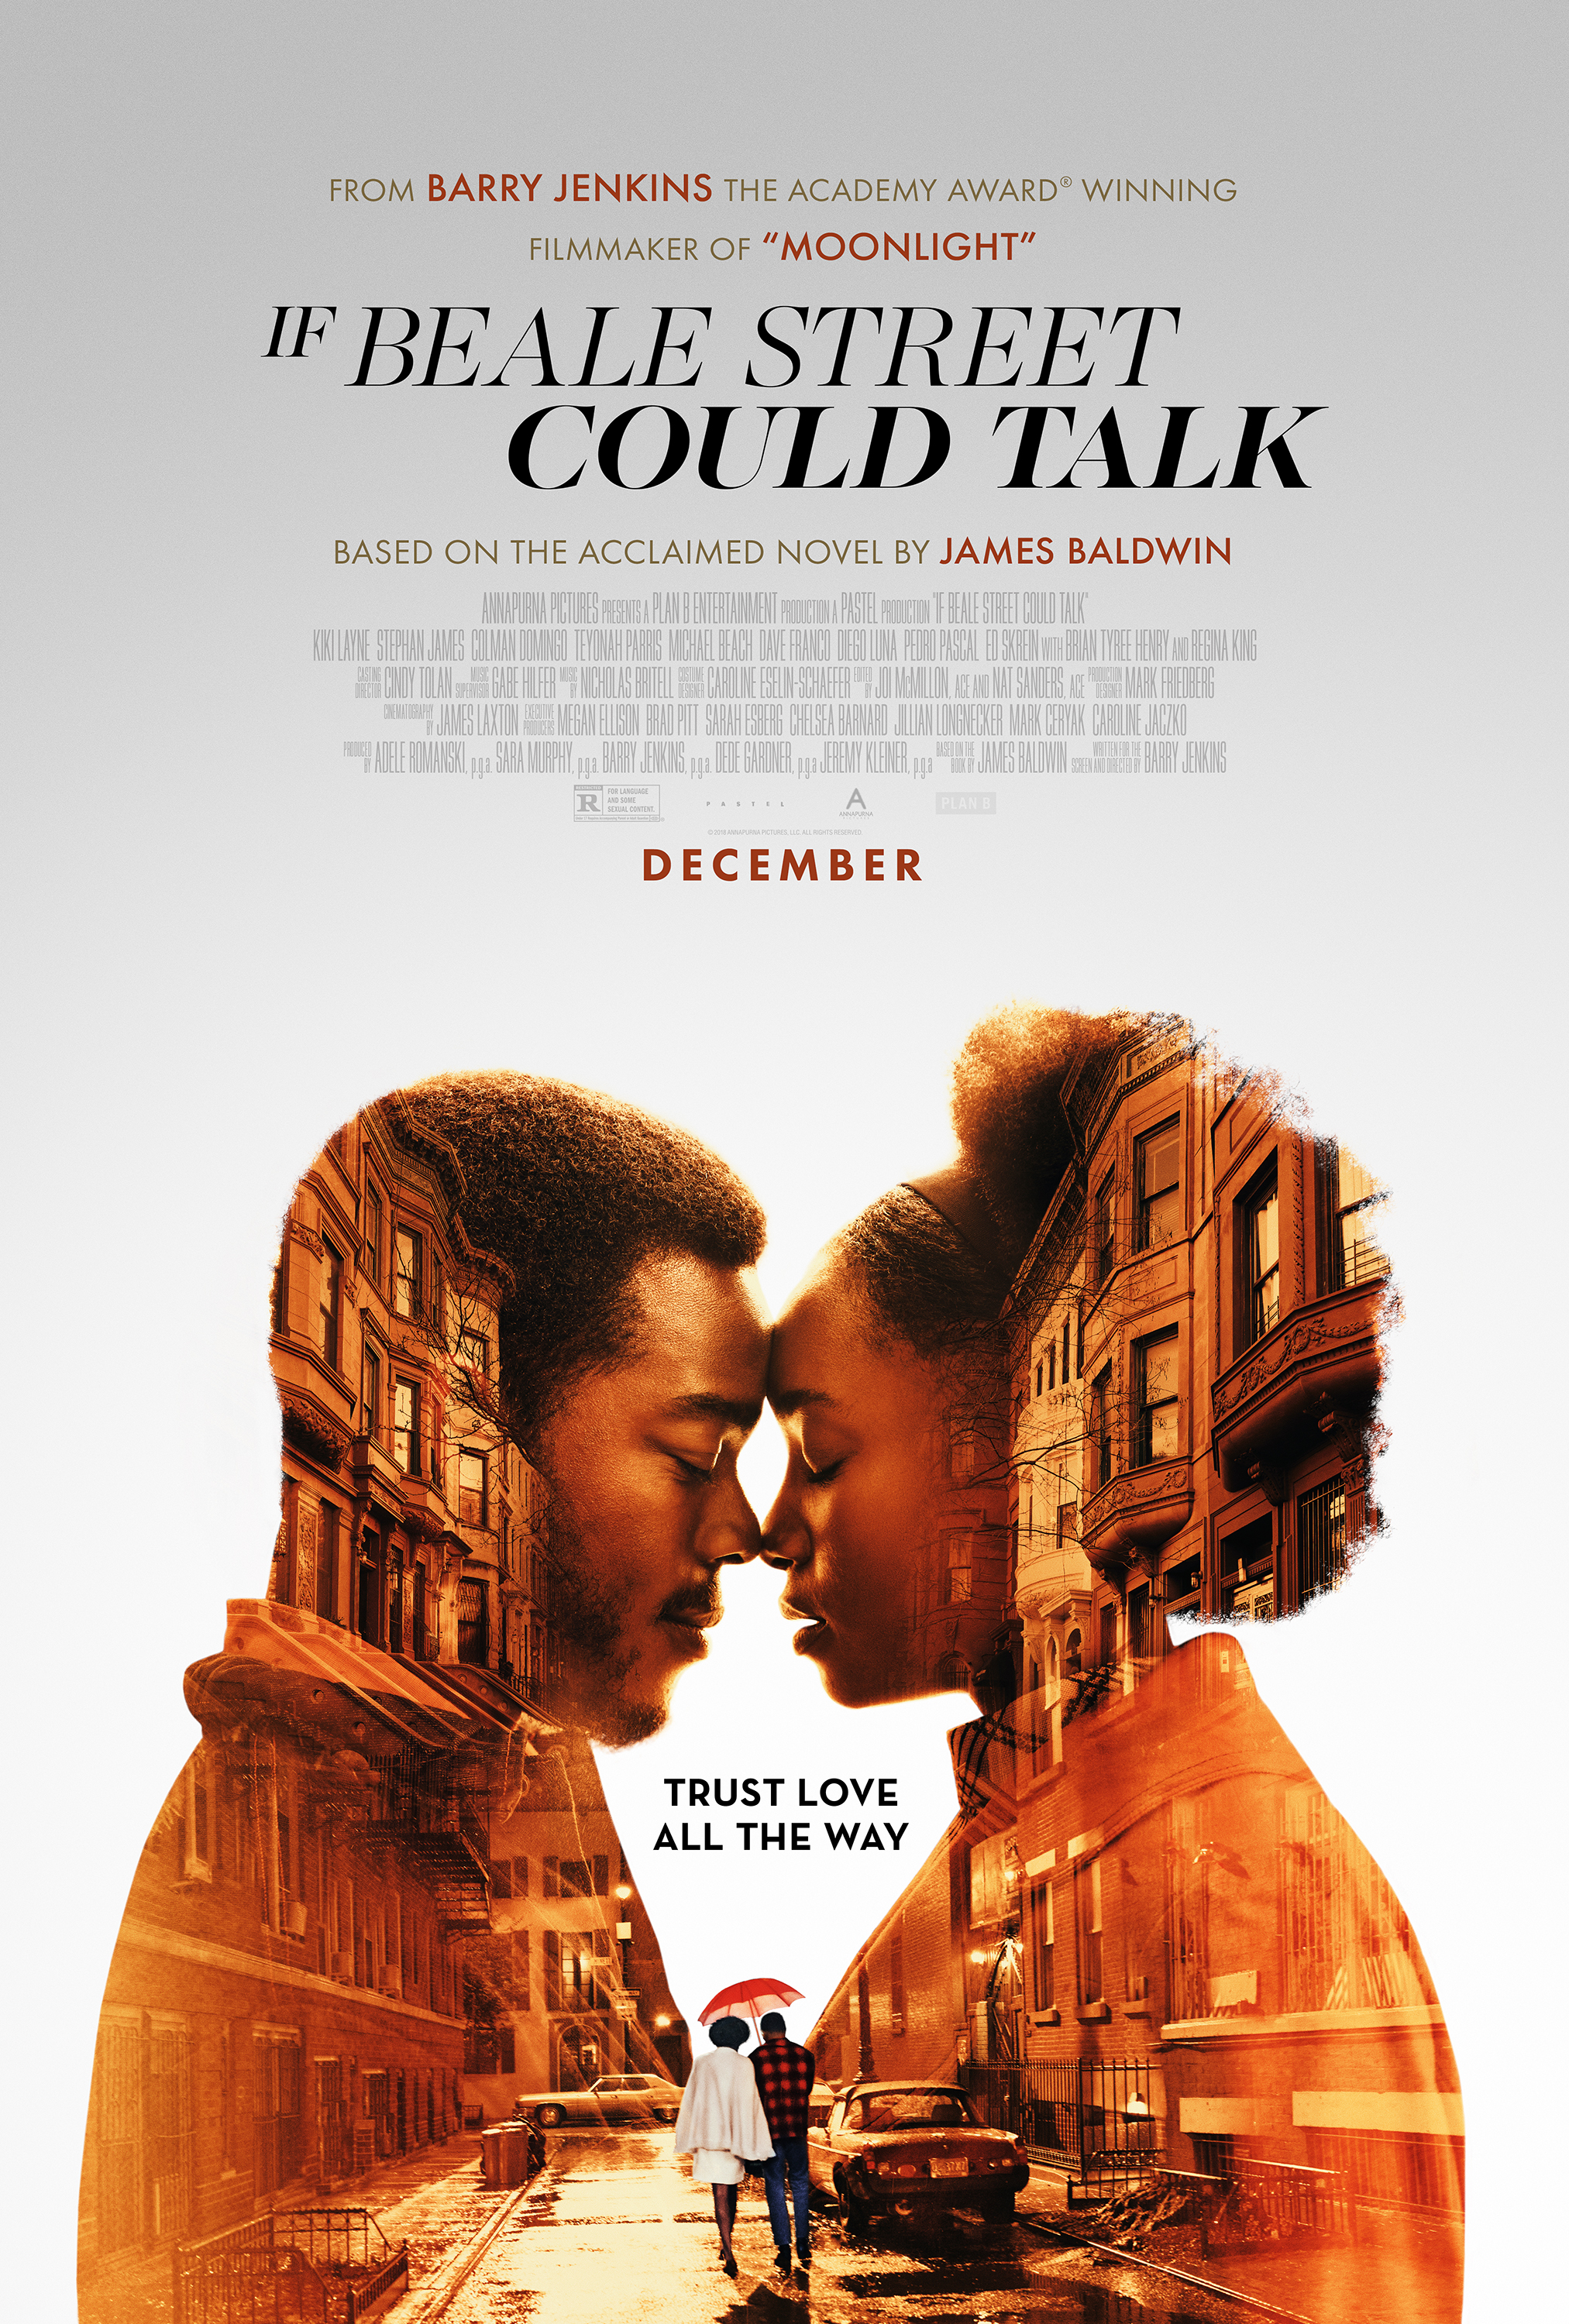 If Beale Street Could Talk   (2018) dir. Barry Jenkins Rated: R image: ©2018  Annapurna Pictures